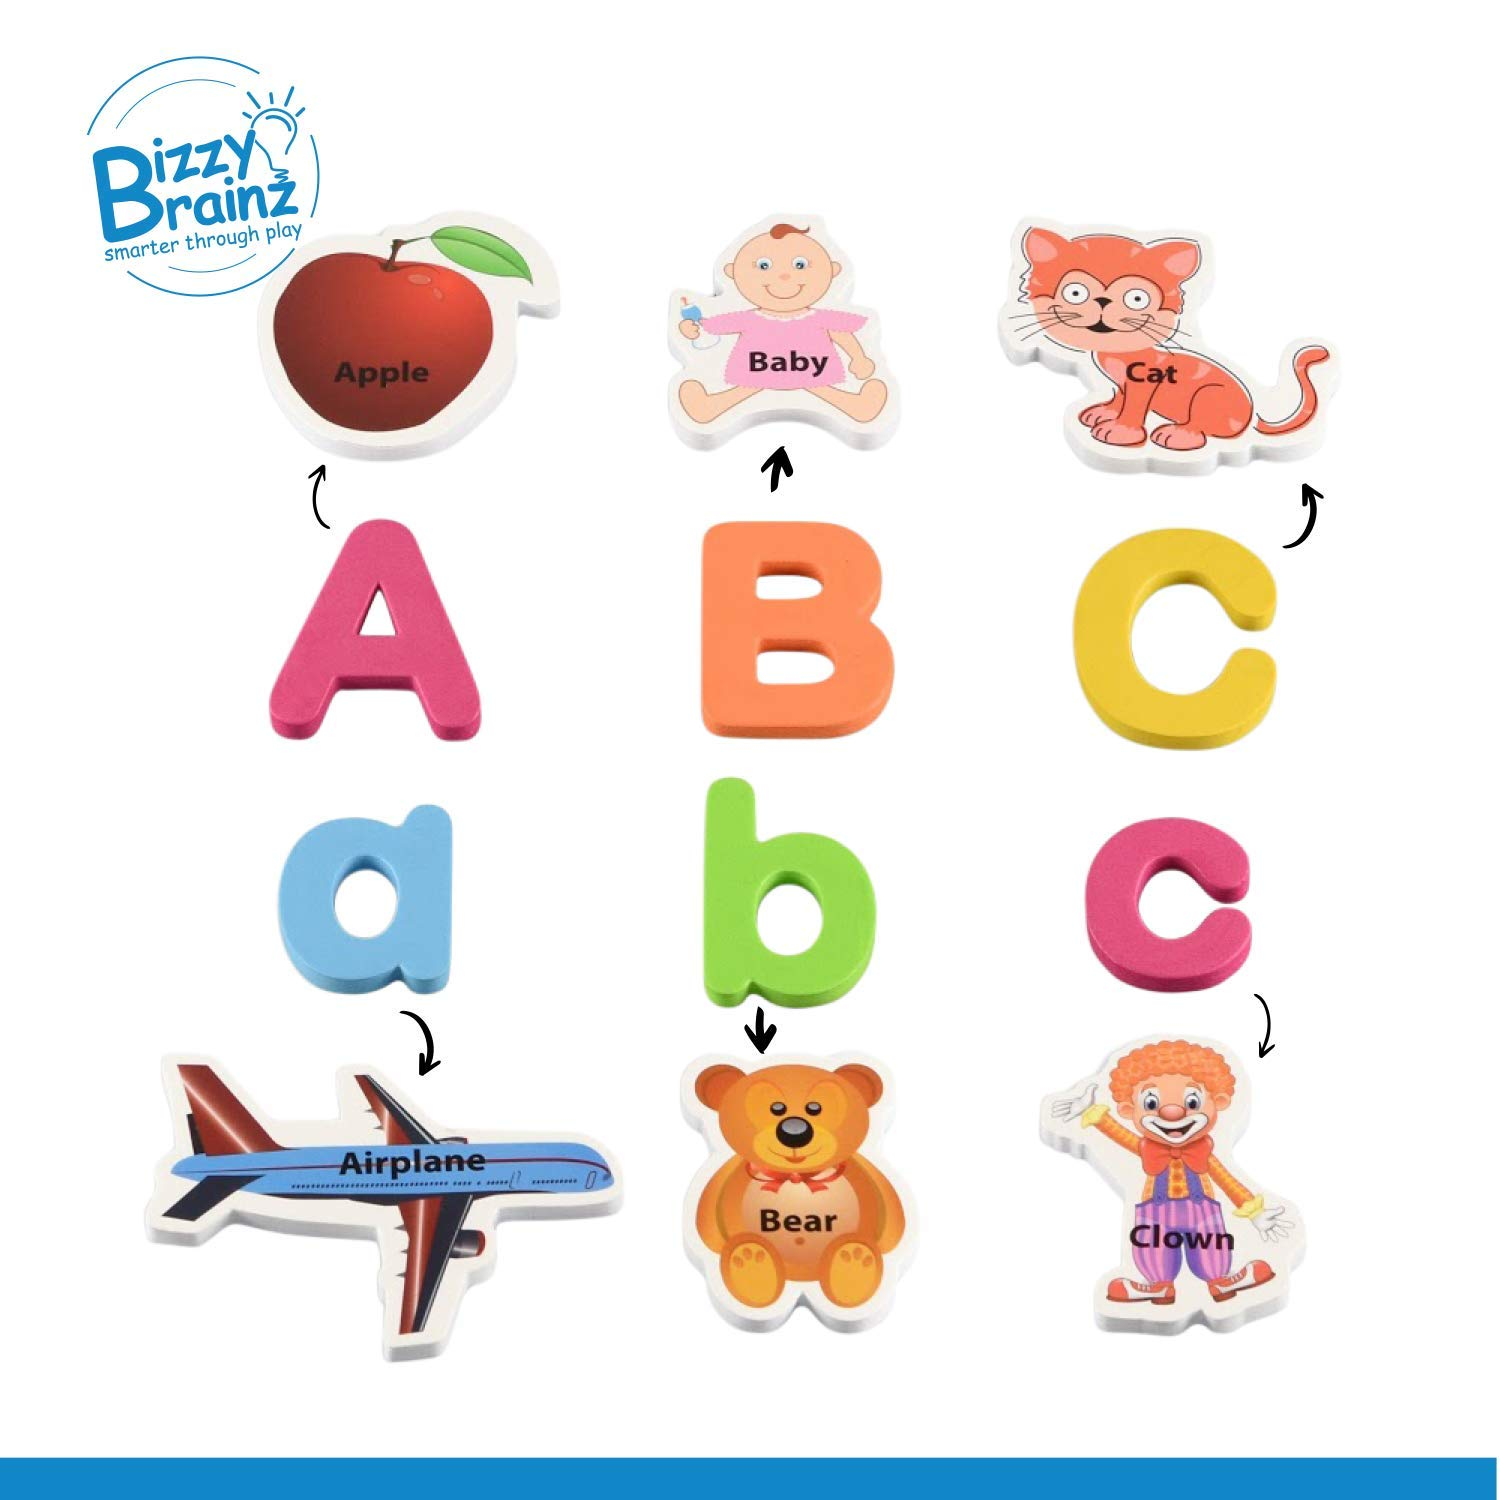 Alphabet Magnets + Matching A-Z Objects / ABC Magnets, Numbers and Board + E-Book with 35 Learning & Spelling Games Included | Magnetic Letters and Numbers for Toddlers by BizzyBrainz (Image #3)